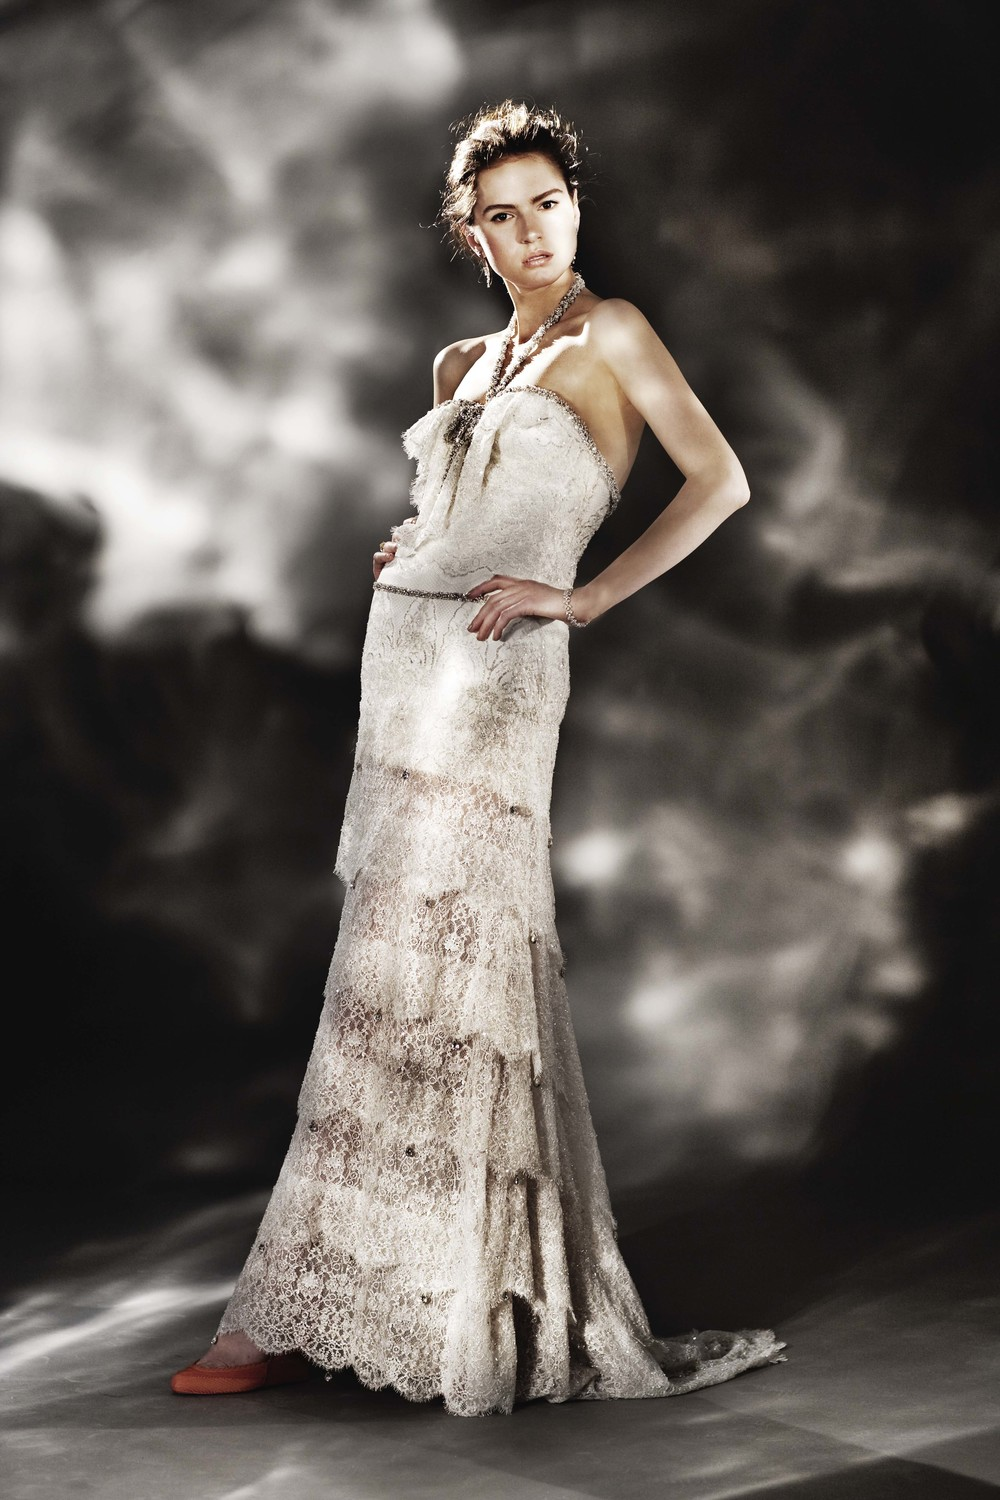 Pashion_Mag_Bridal_HW_sht_07_045.jpg